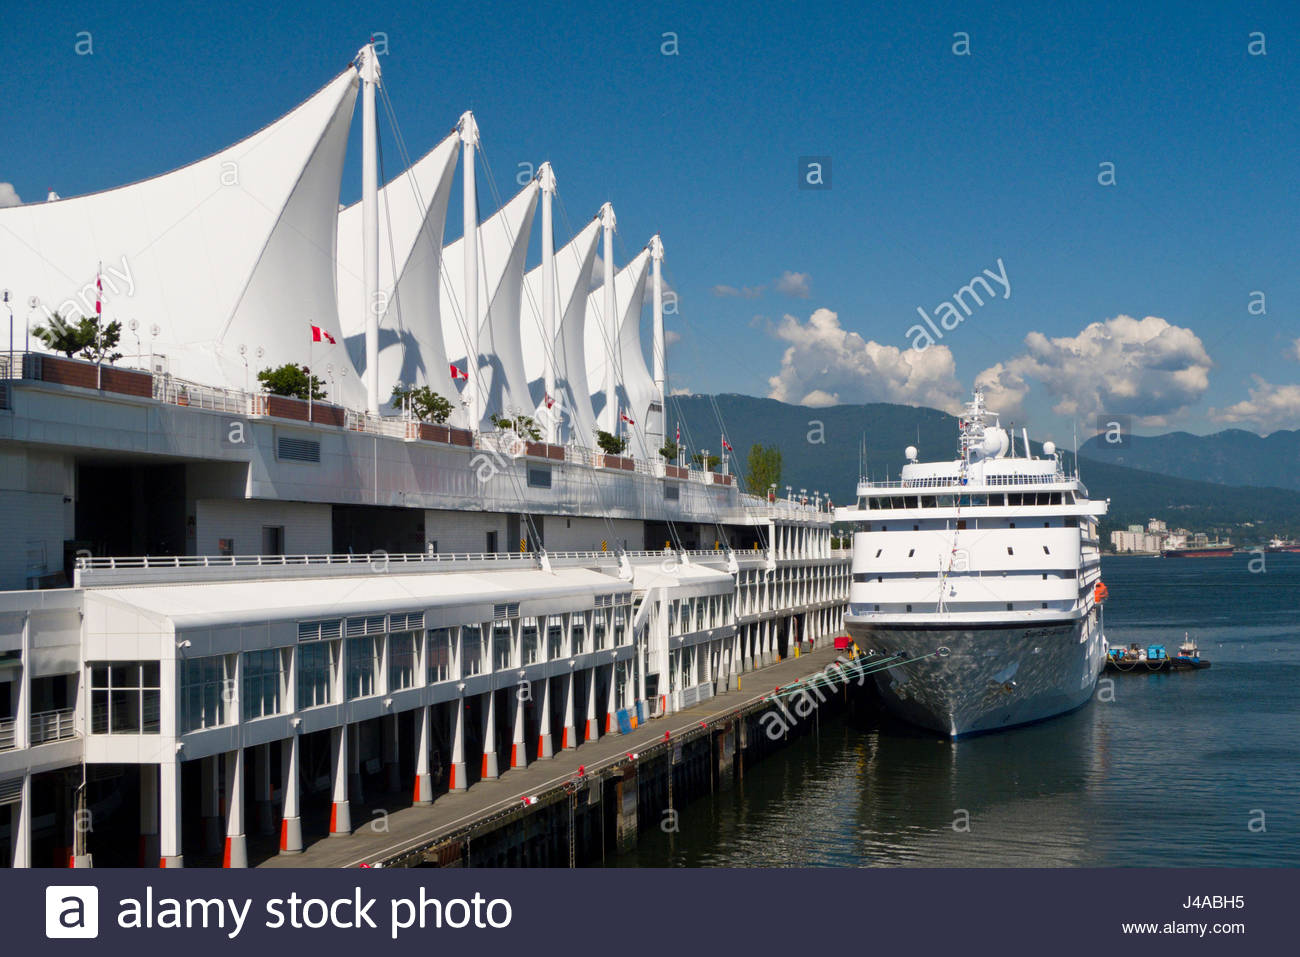 The Regency Seven Seas Navigator cruise ship docked at Canada Place, Vancouver, British Colombia, Canada - Stock Image